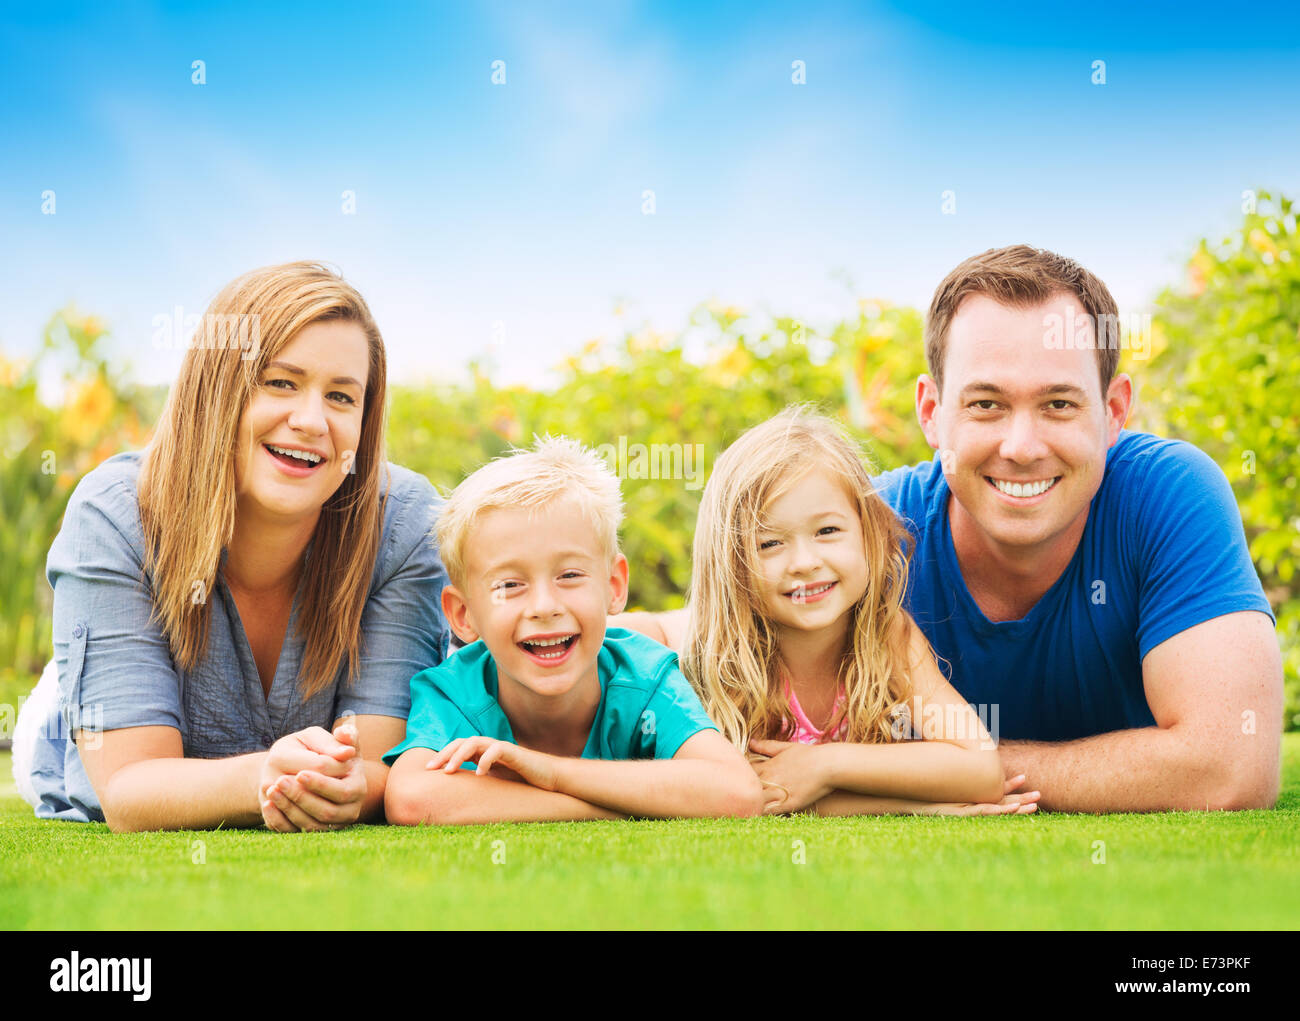 Portrait of Happy Family Outside on Grass - Stock Image